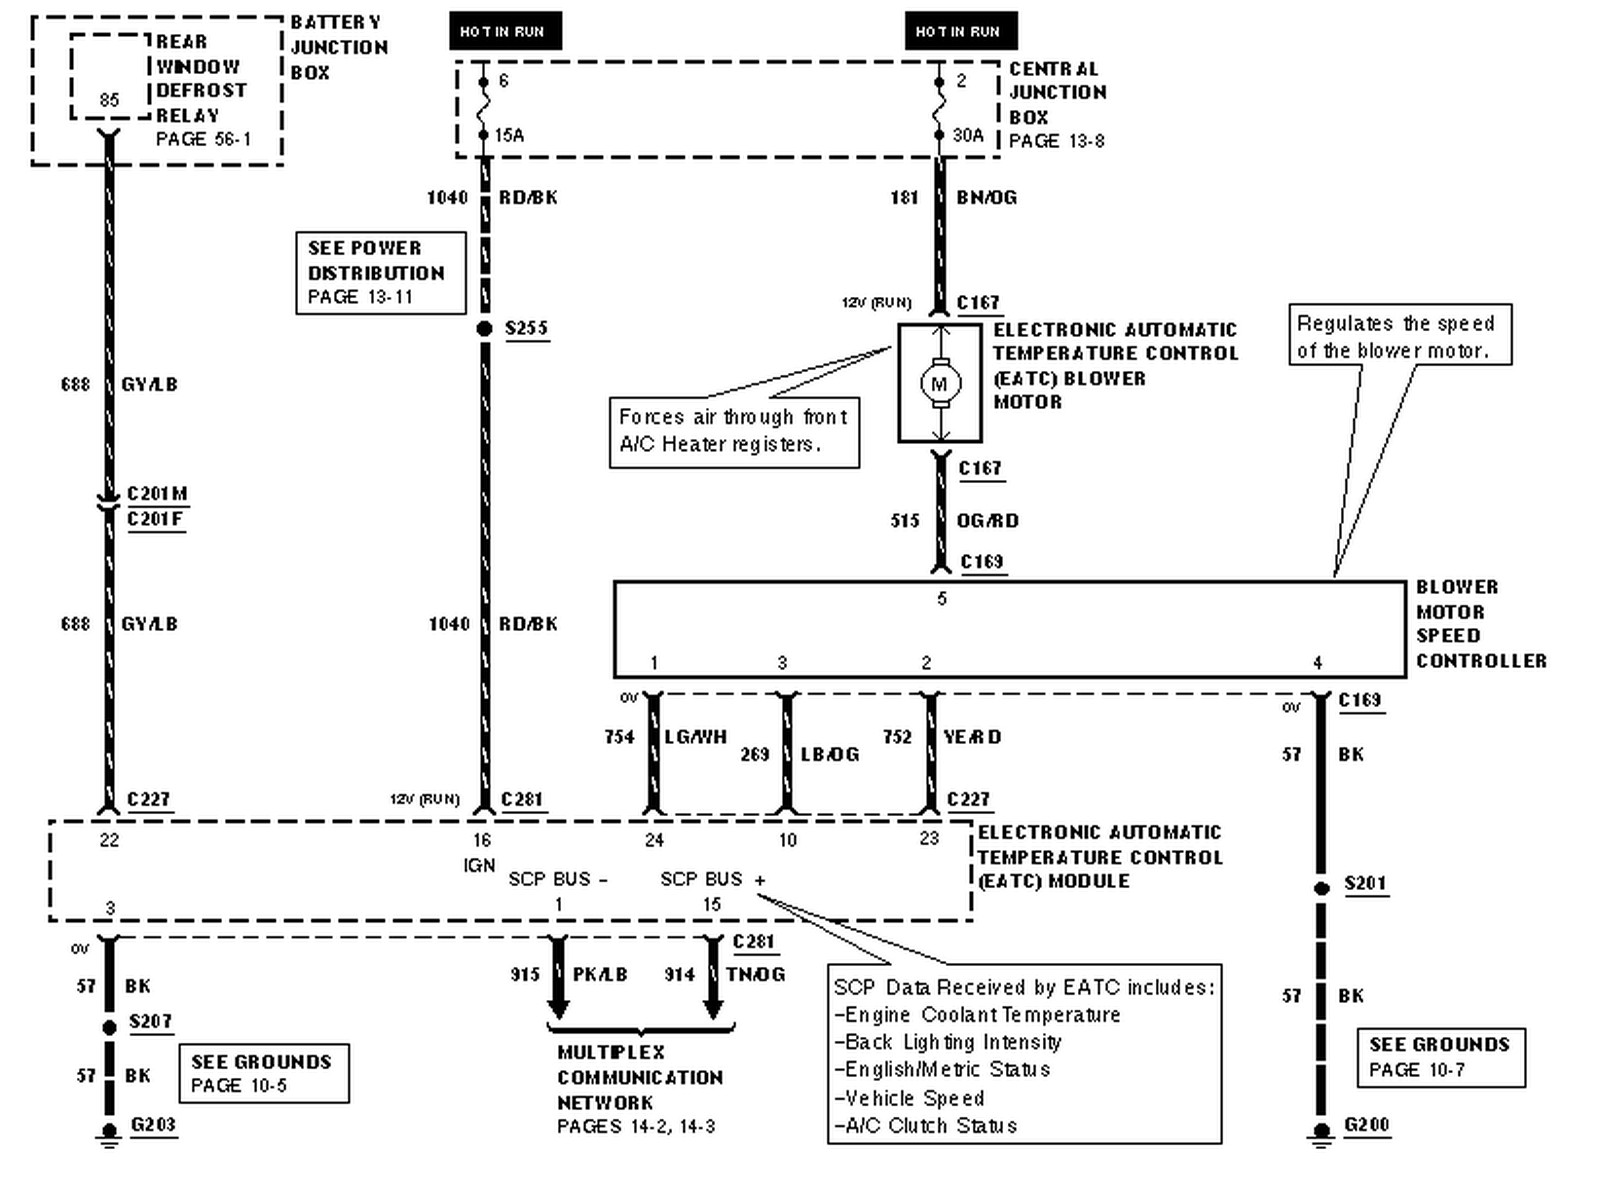 2005 freightliner columbia ac wiring diagram images diagrams air conditioning wiring diagrams 2007 freightliner columbia